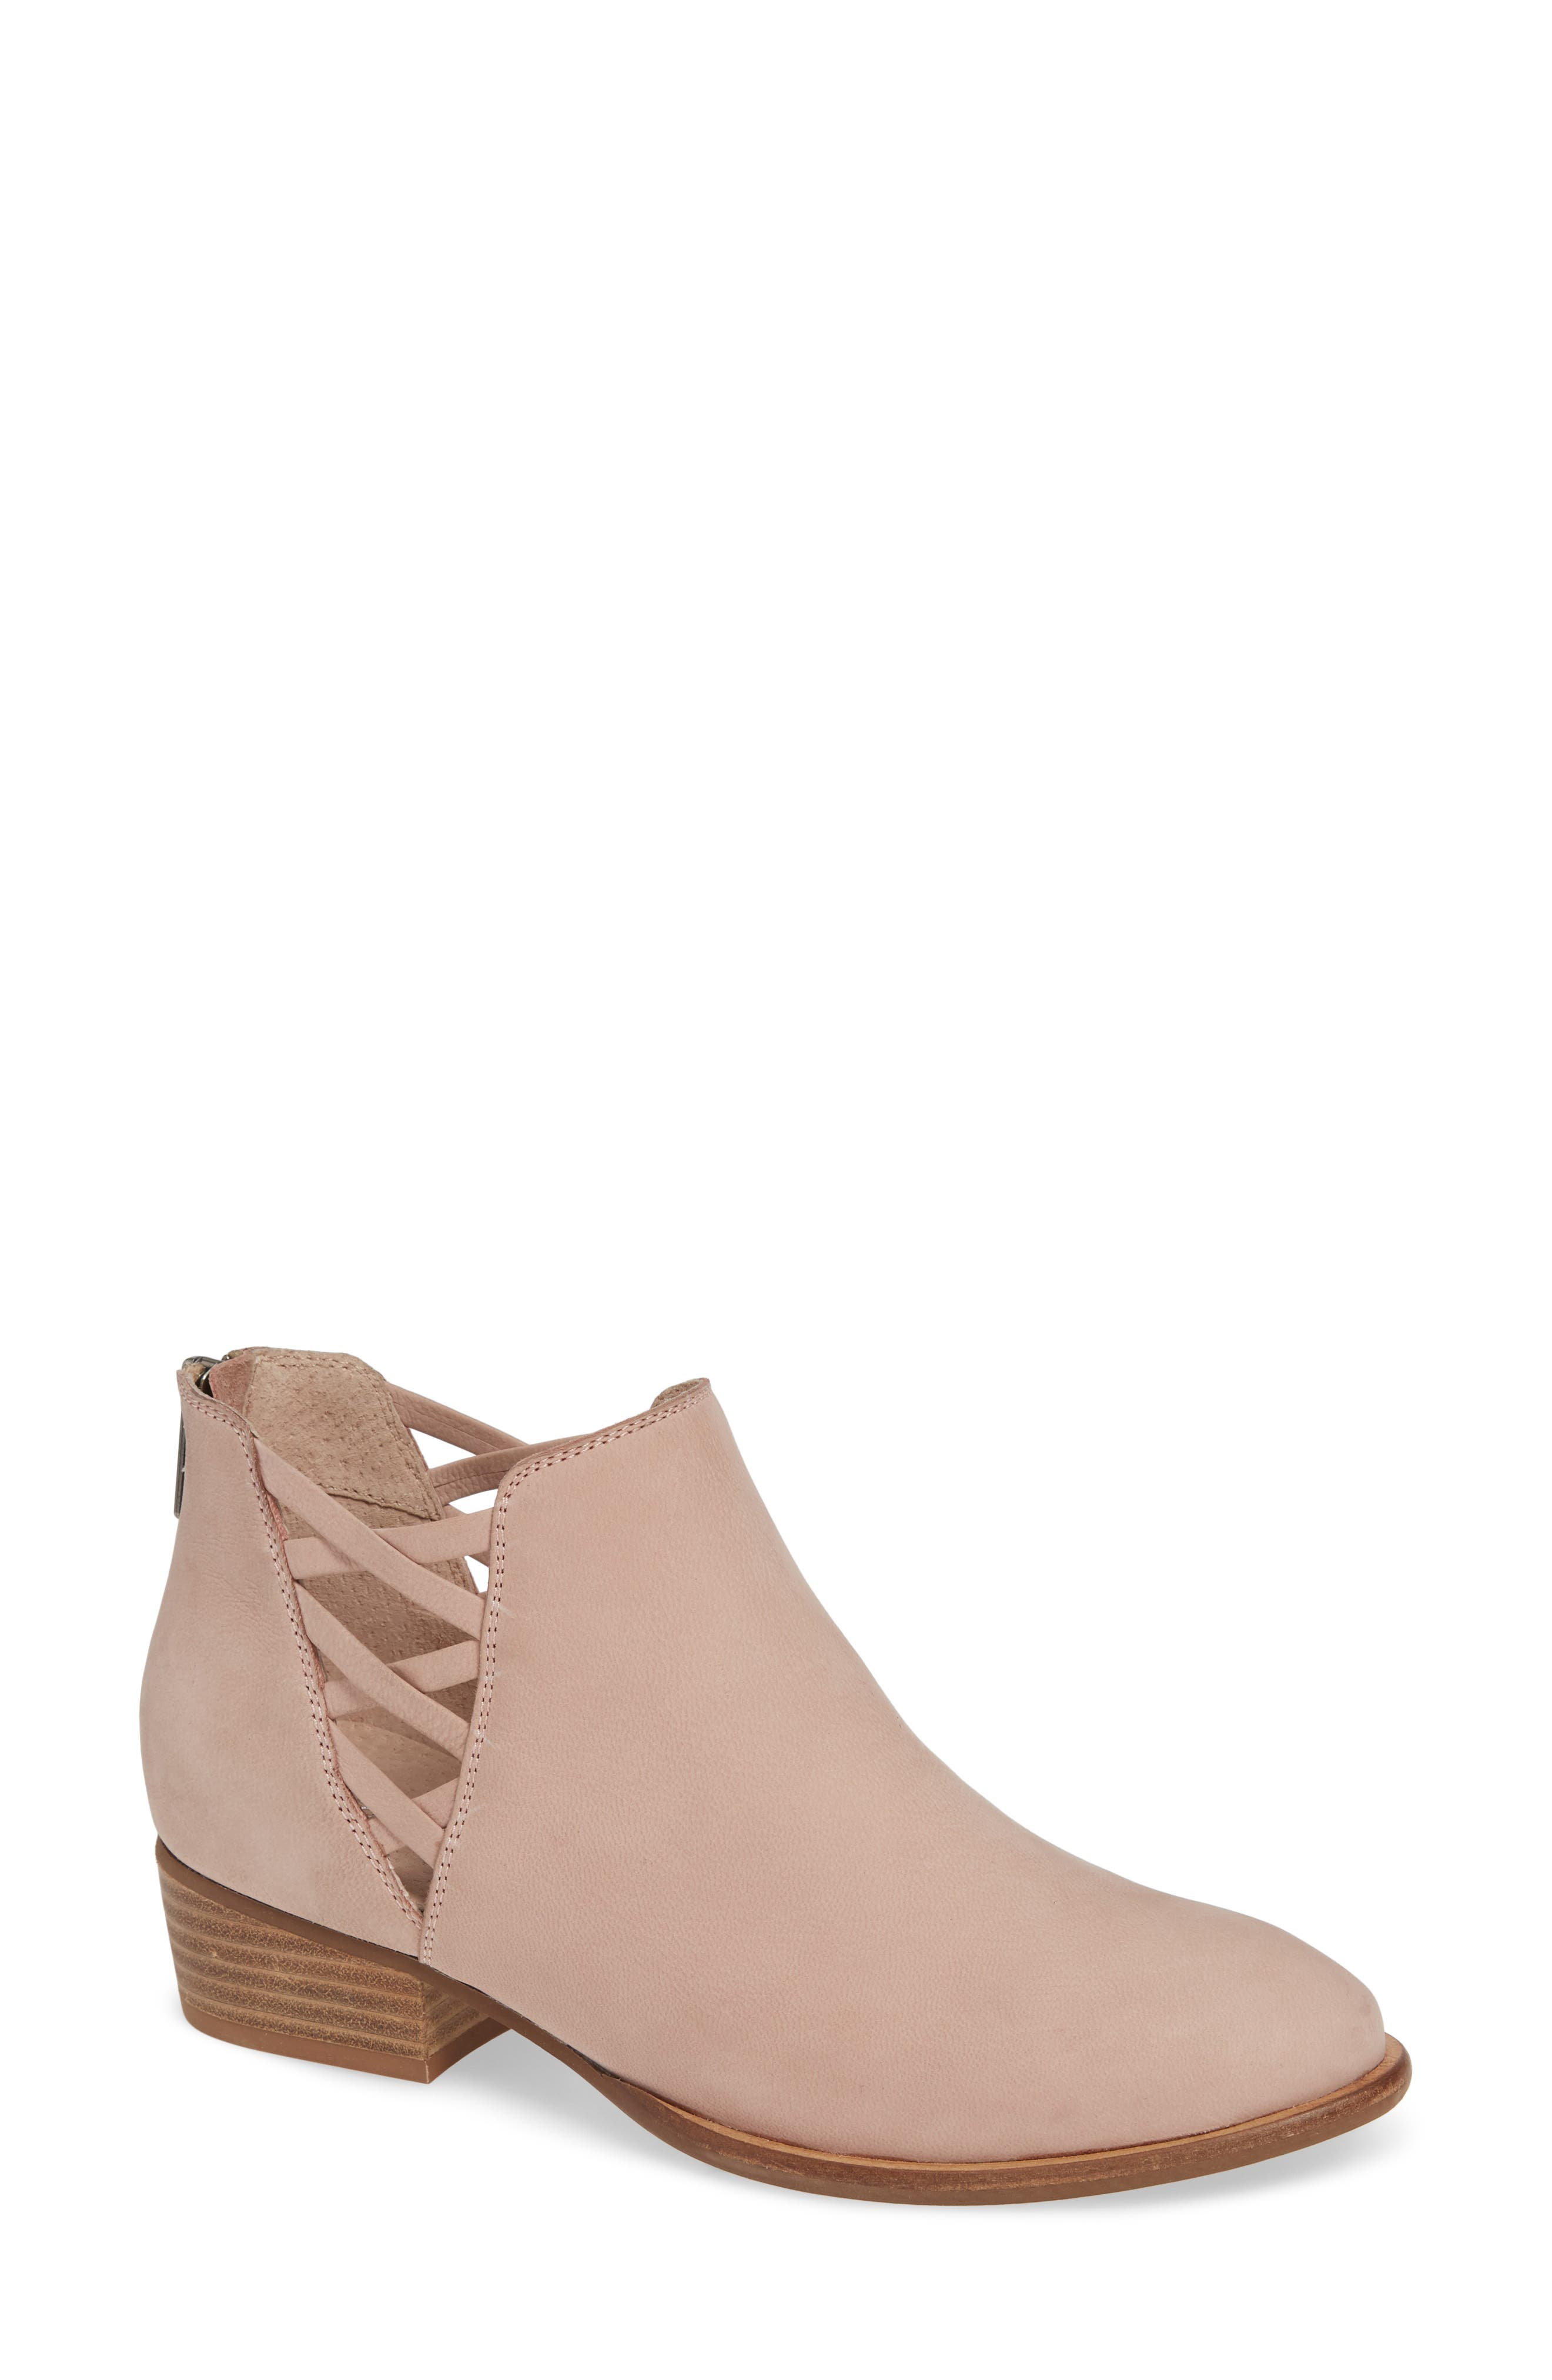 Seychelles Remembrance Bootie- Pink